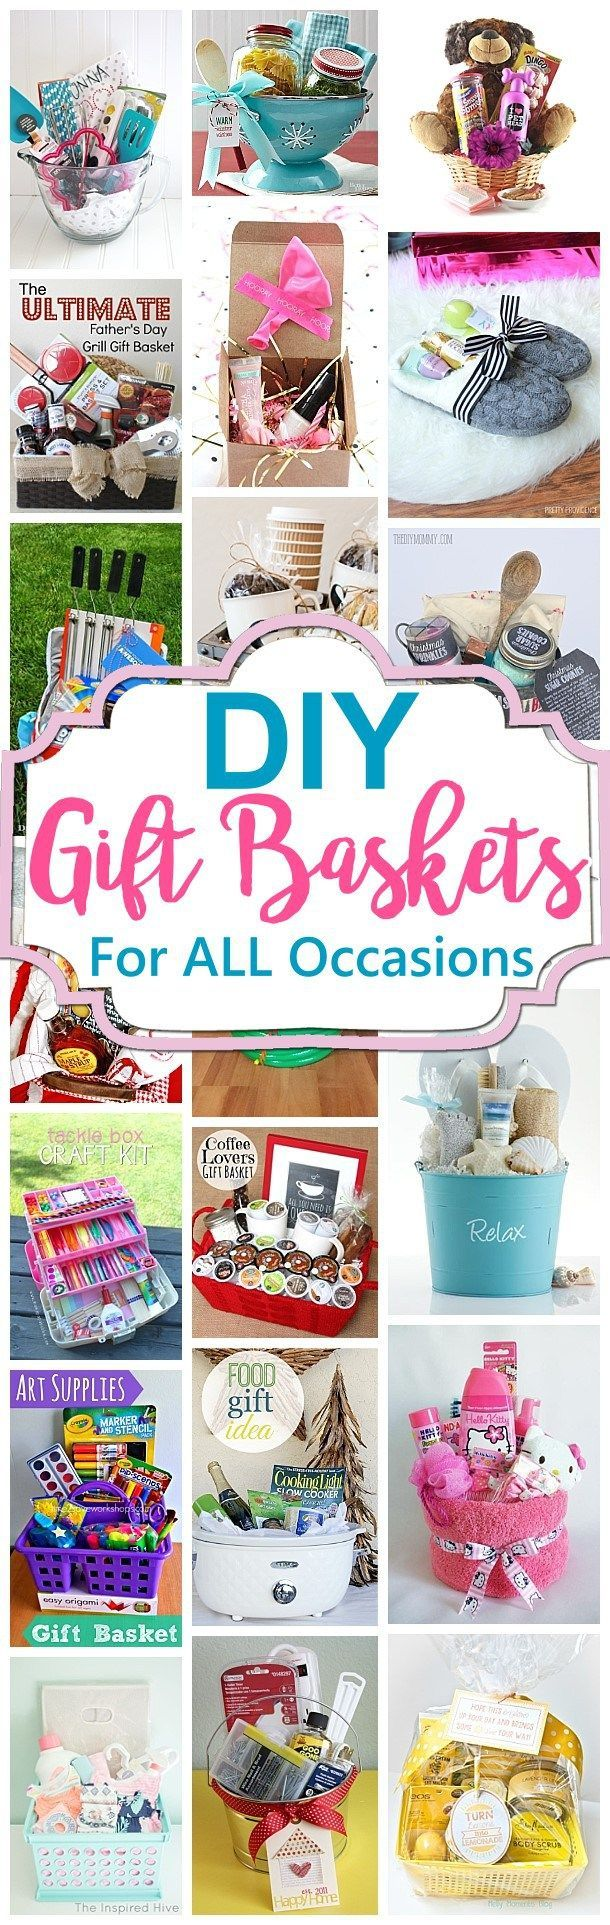 Do it Yourself Gift Baskets Ideas for Any and All Occasions - Perfect for Christmas - Birthdays - Thank You Gifts - Housewarming - Baby Showers or anytime